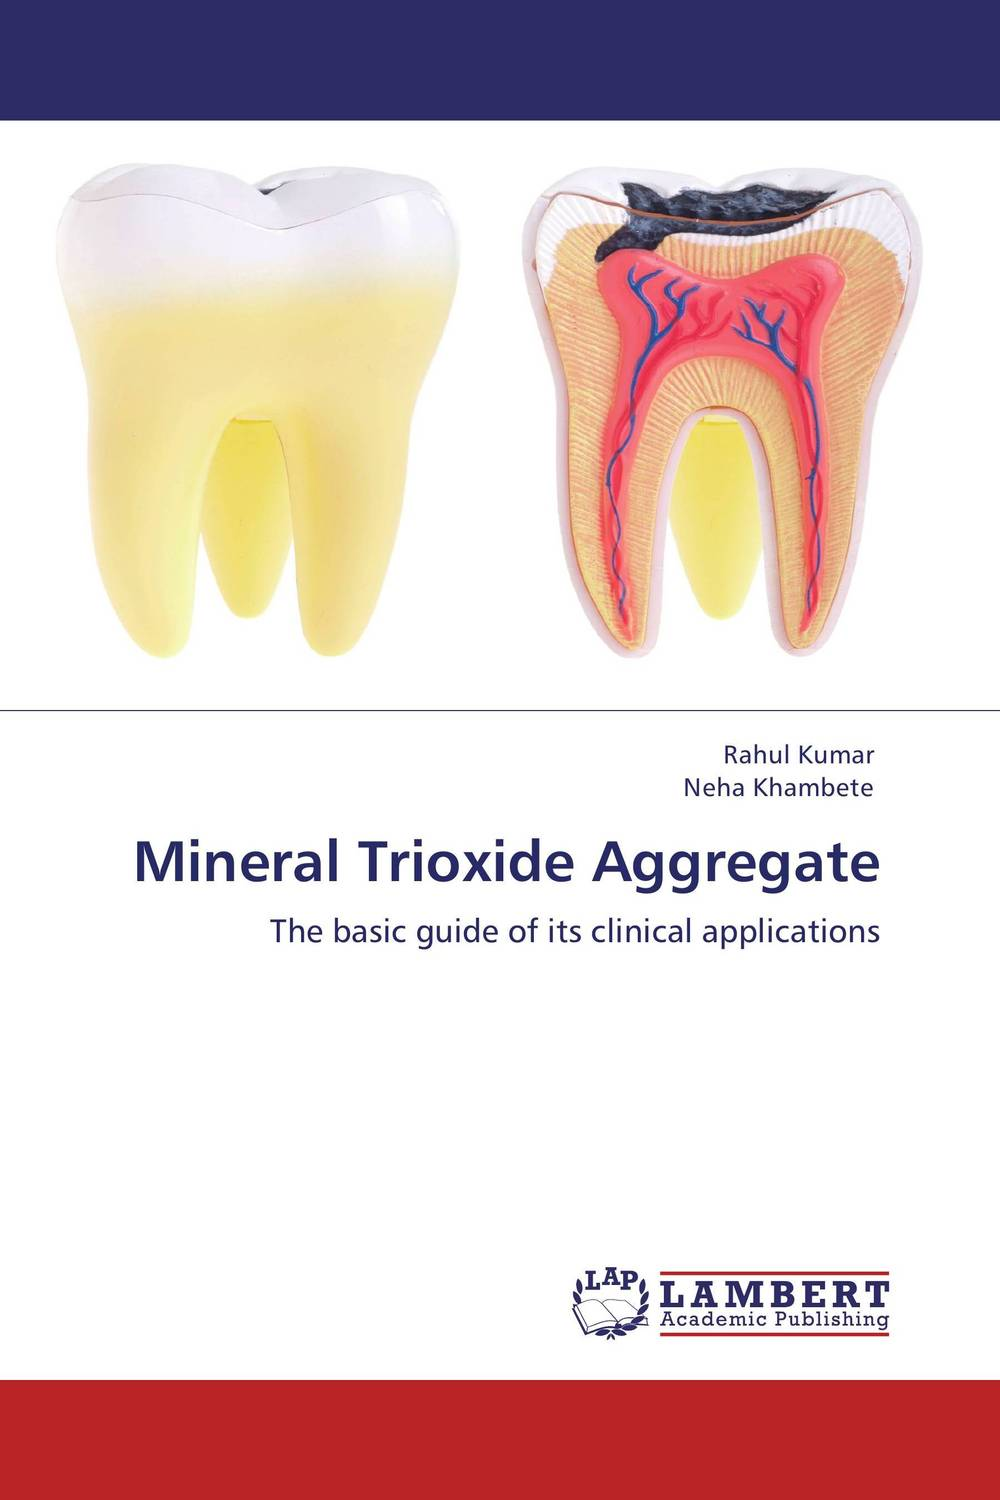 Mineral Trioxide Aggregate the teeth with root canal students to practice root canal preparation and filling actually